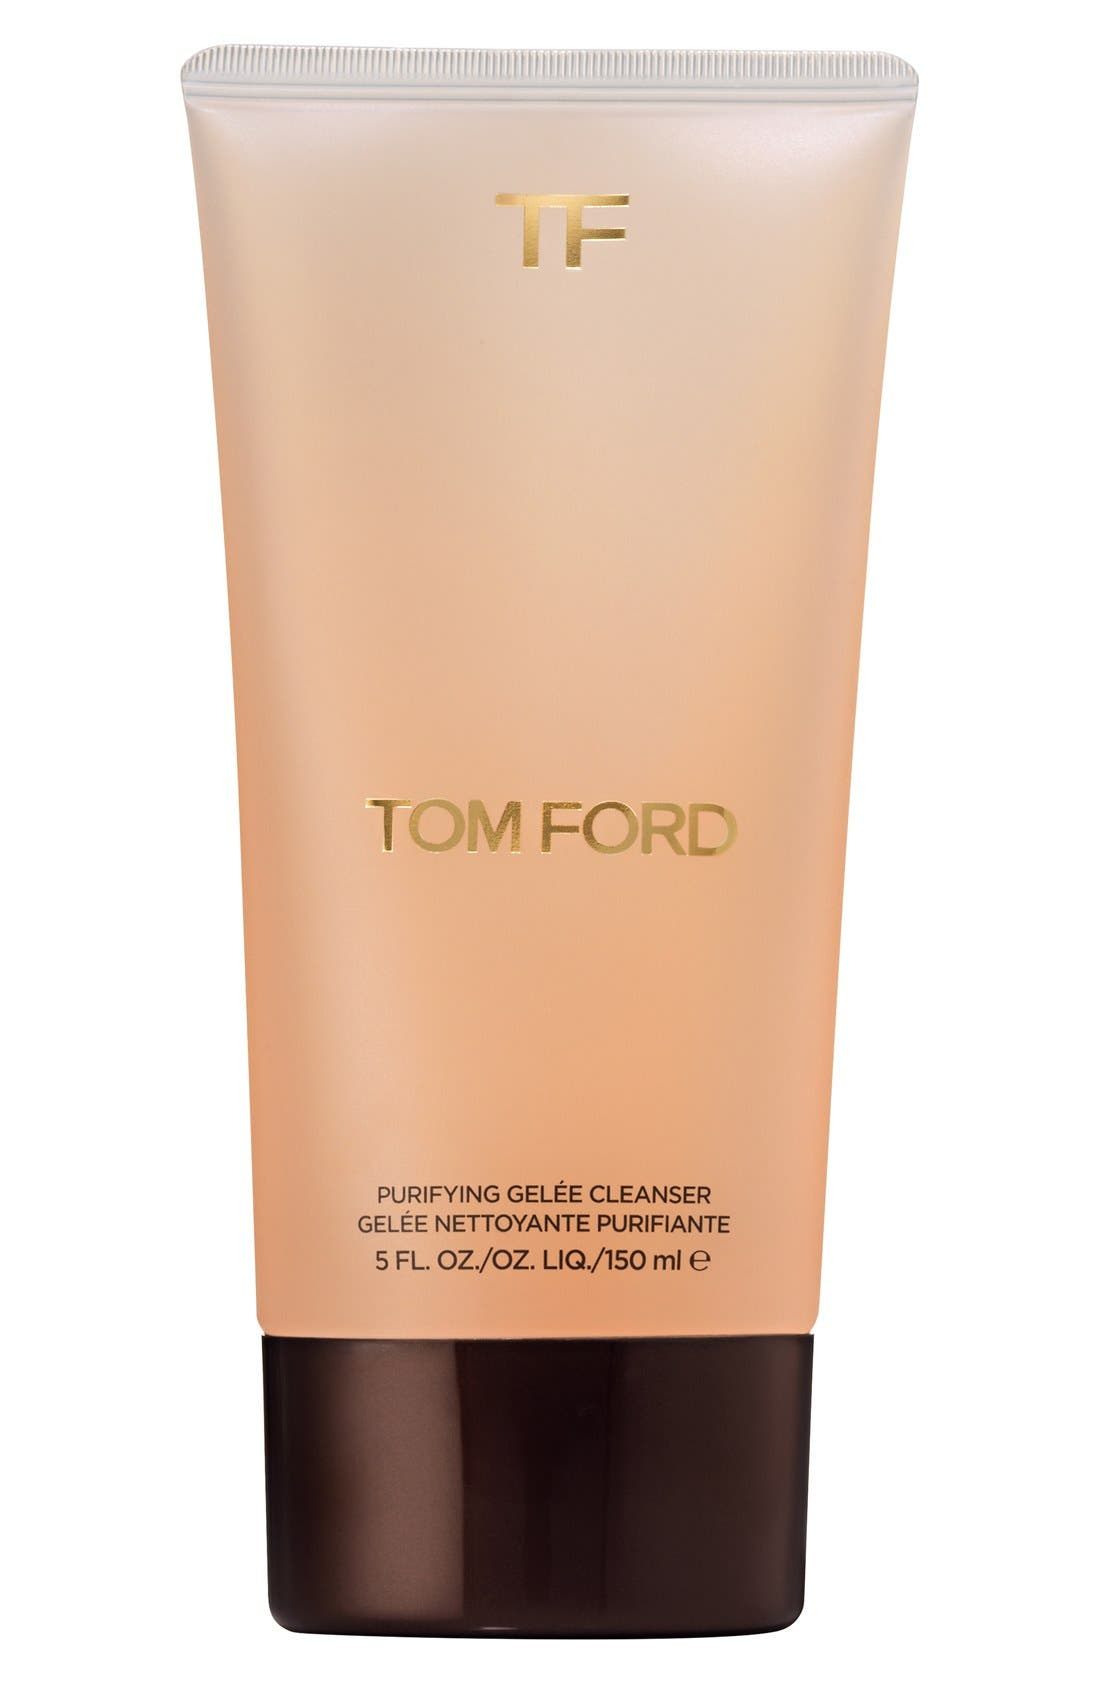 Tom Ford Purifying Gelée Cleanser